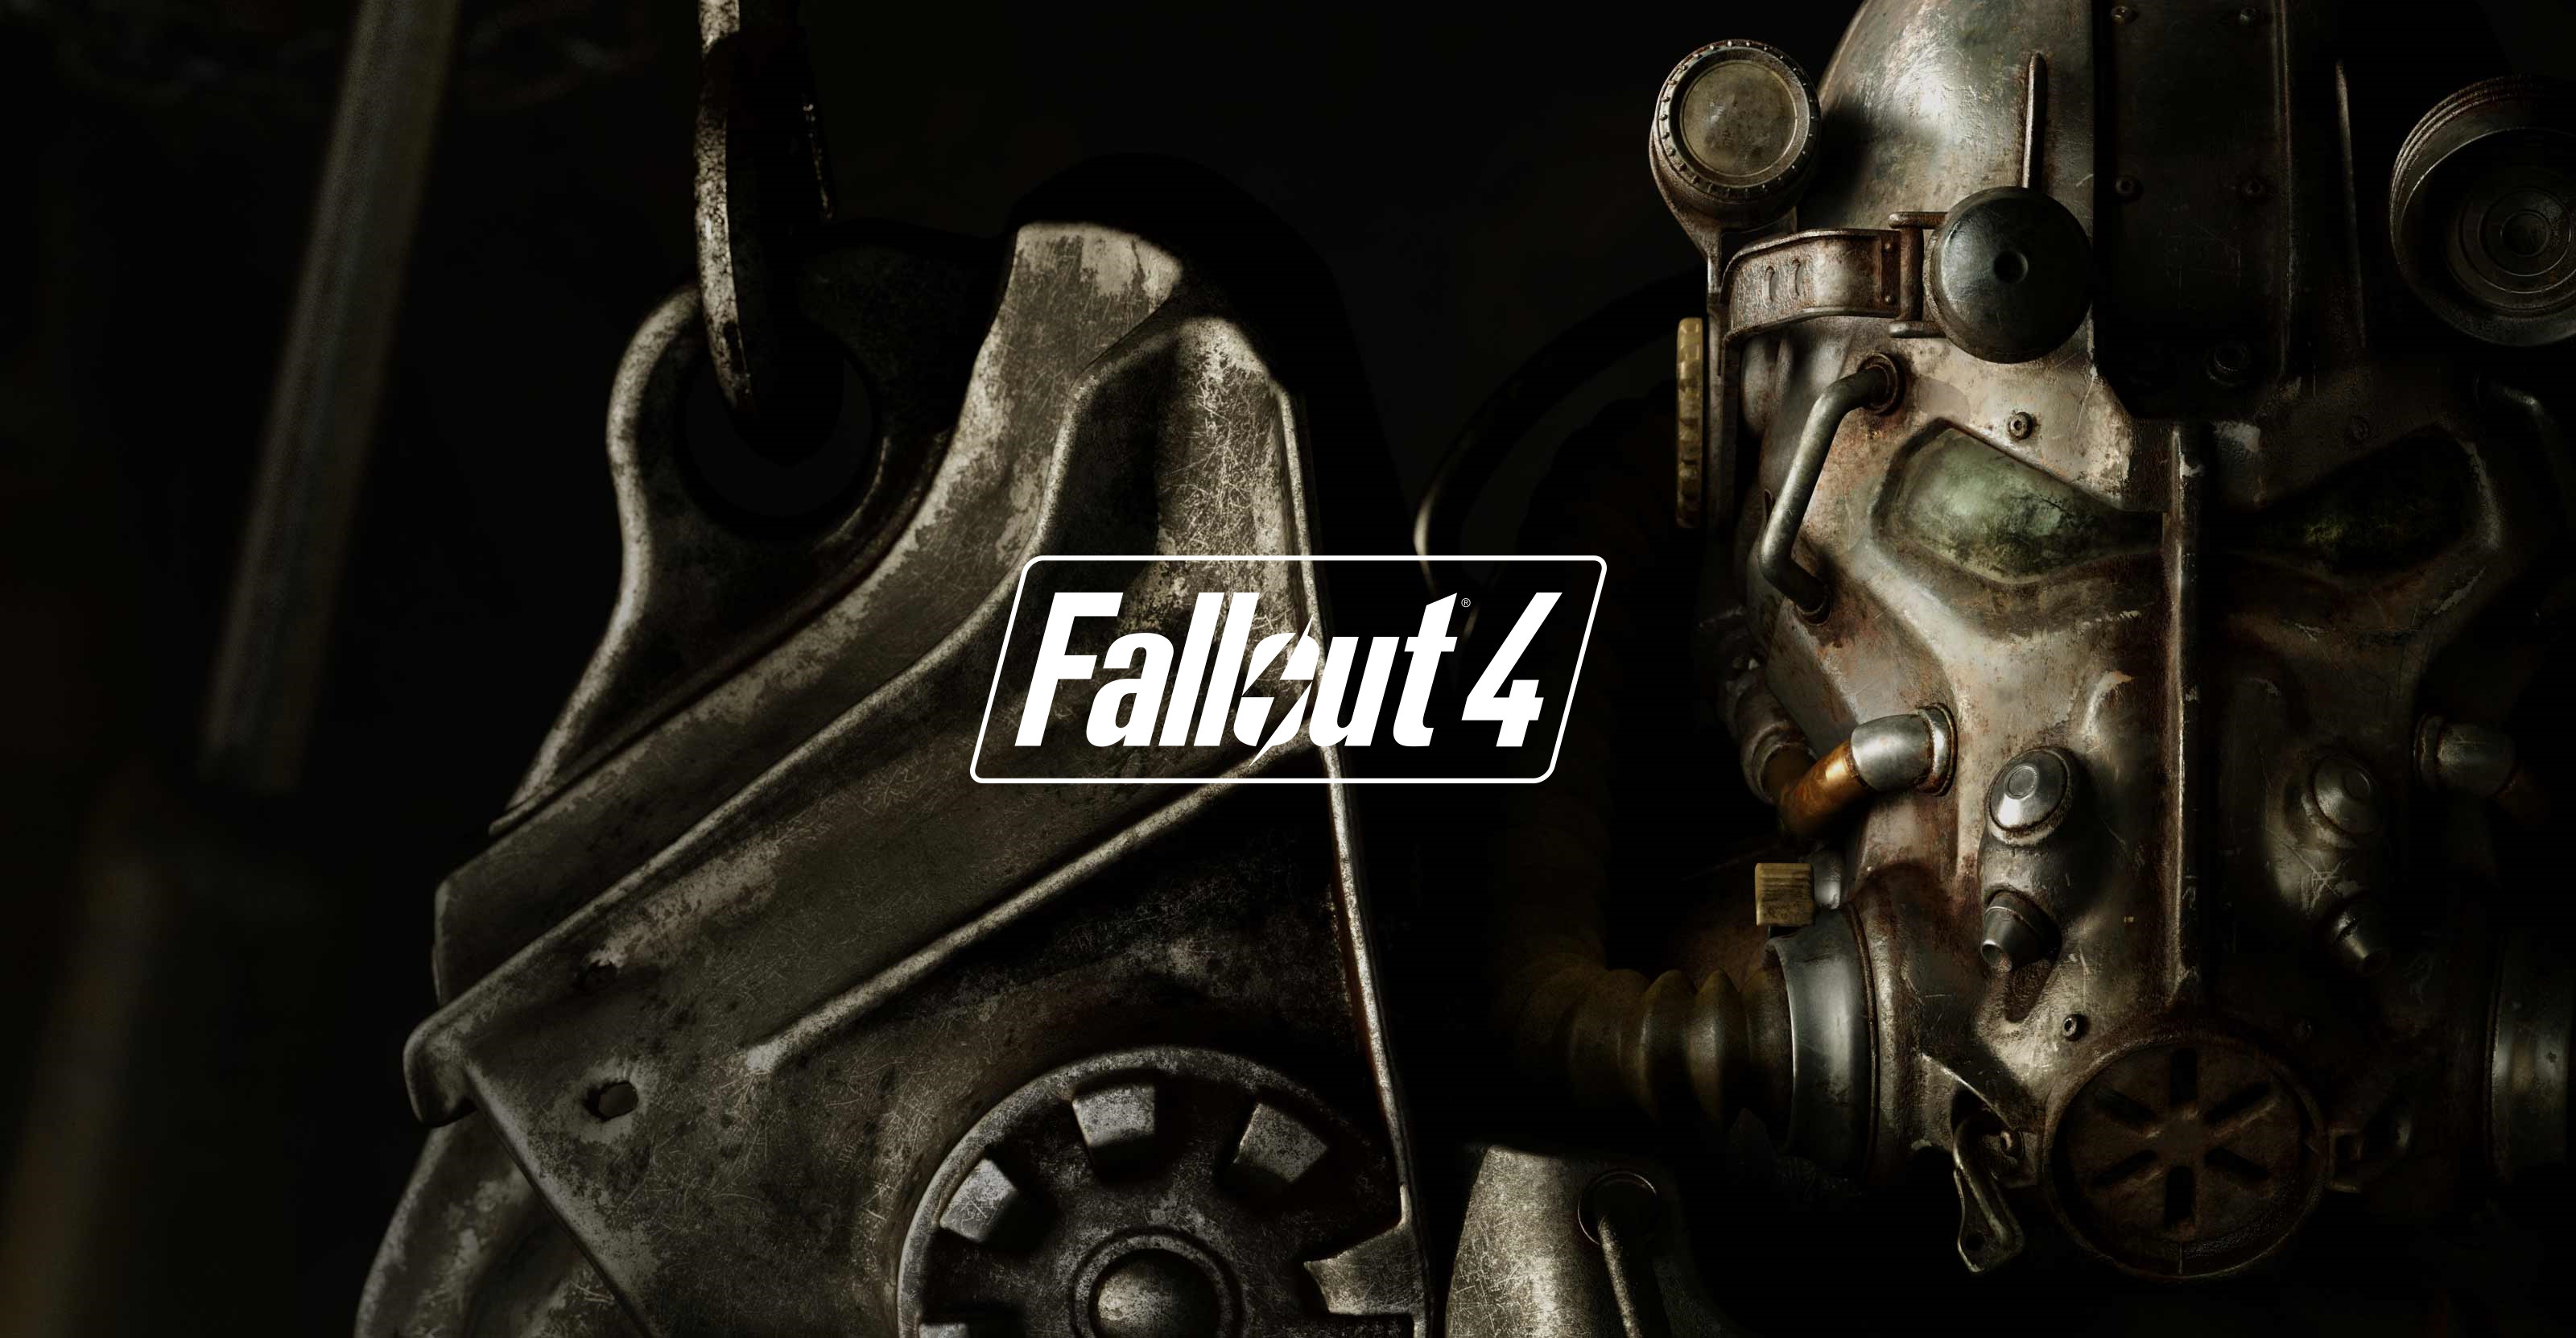 3200x1662 fallout wallpaper hd photo - 1